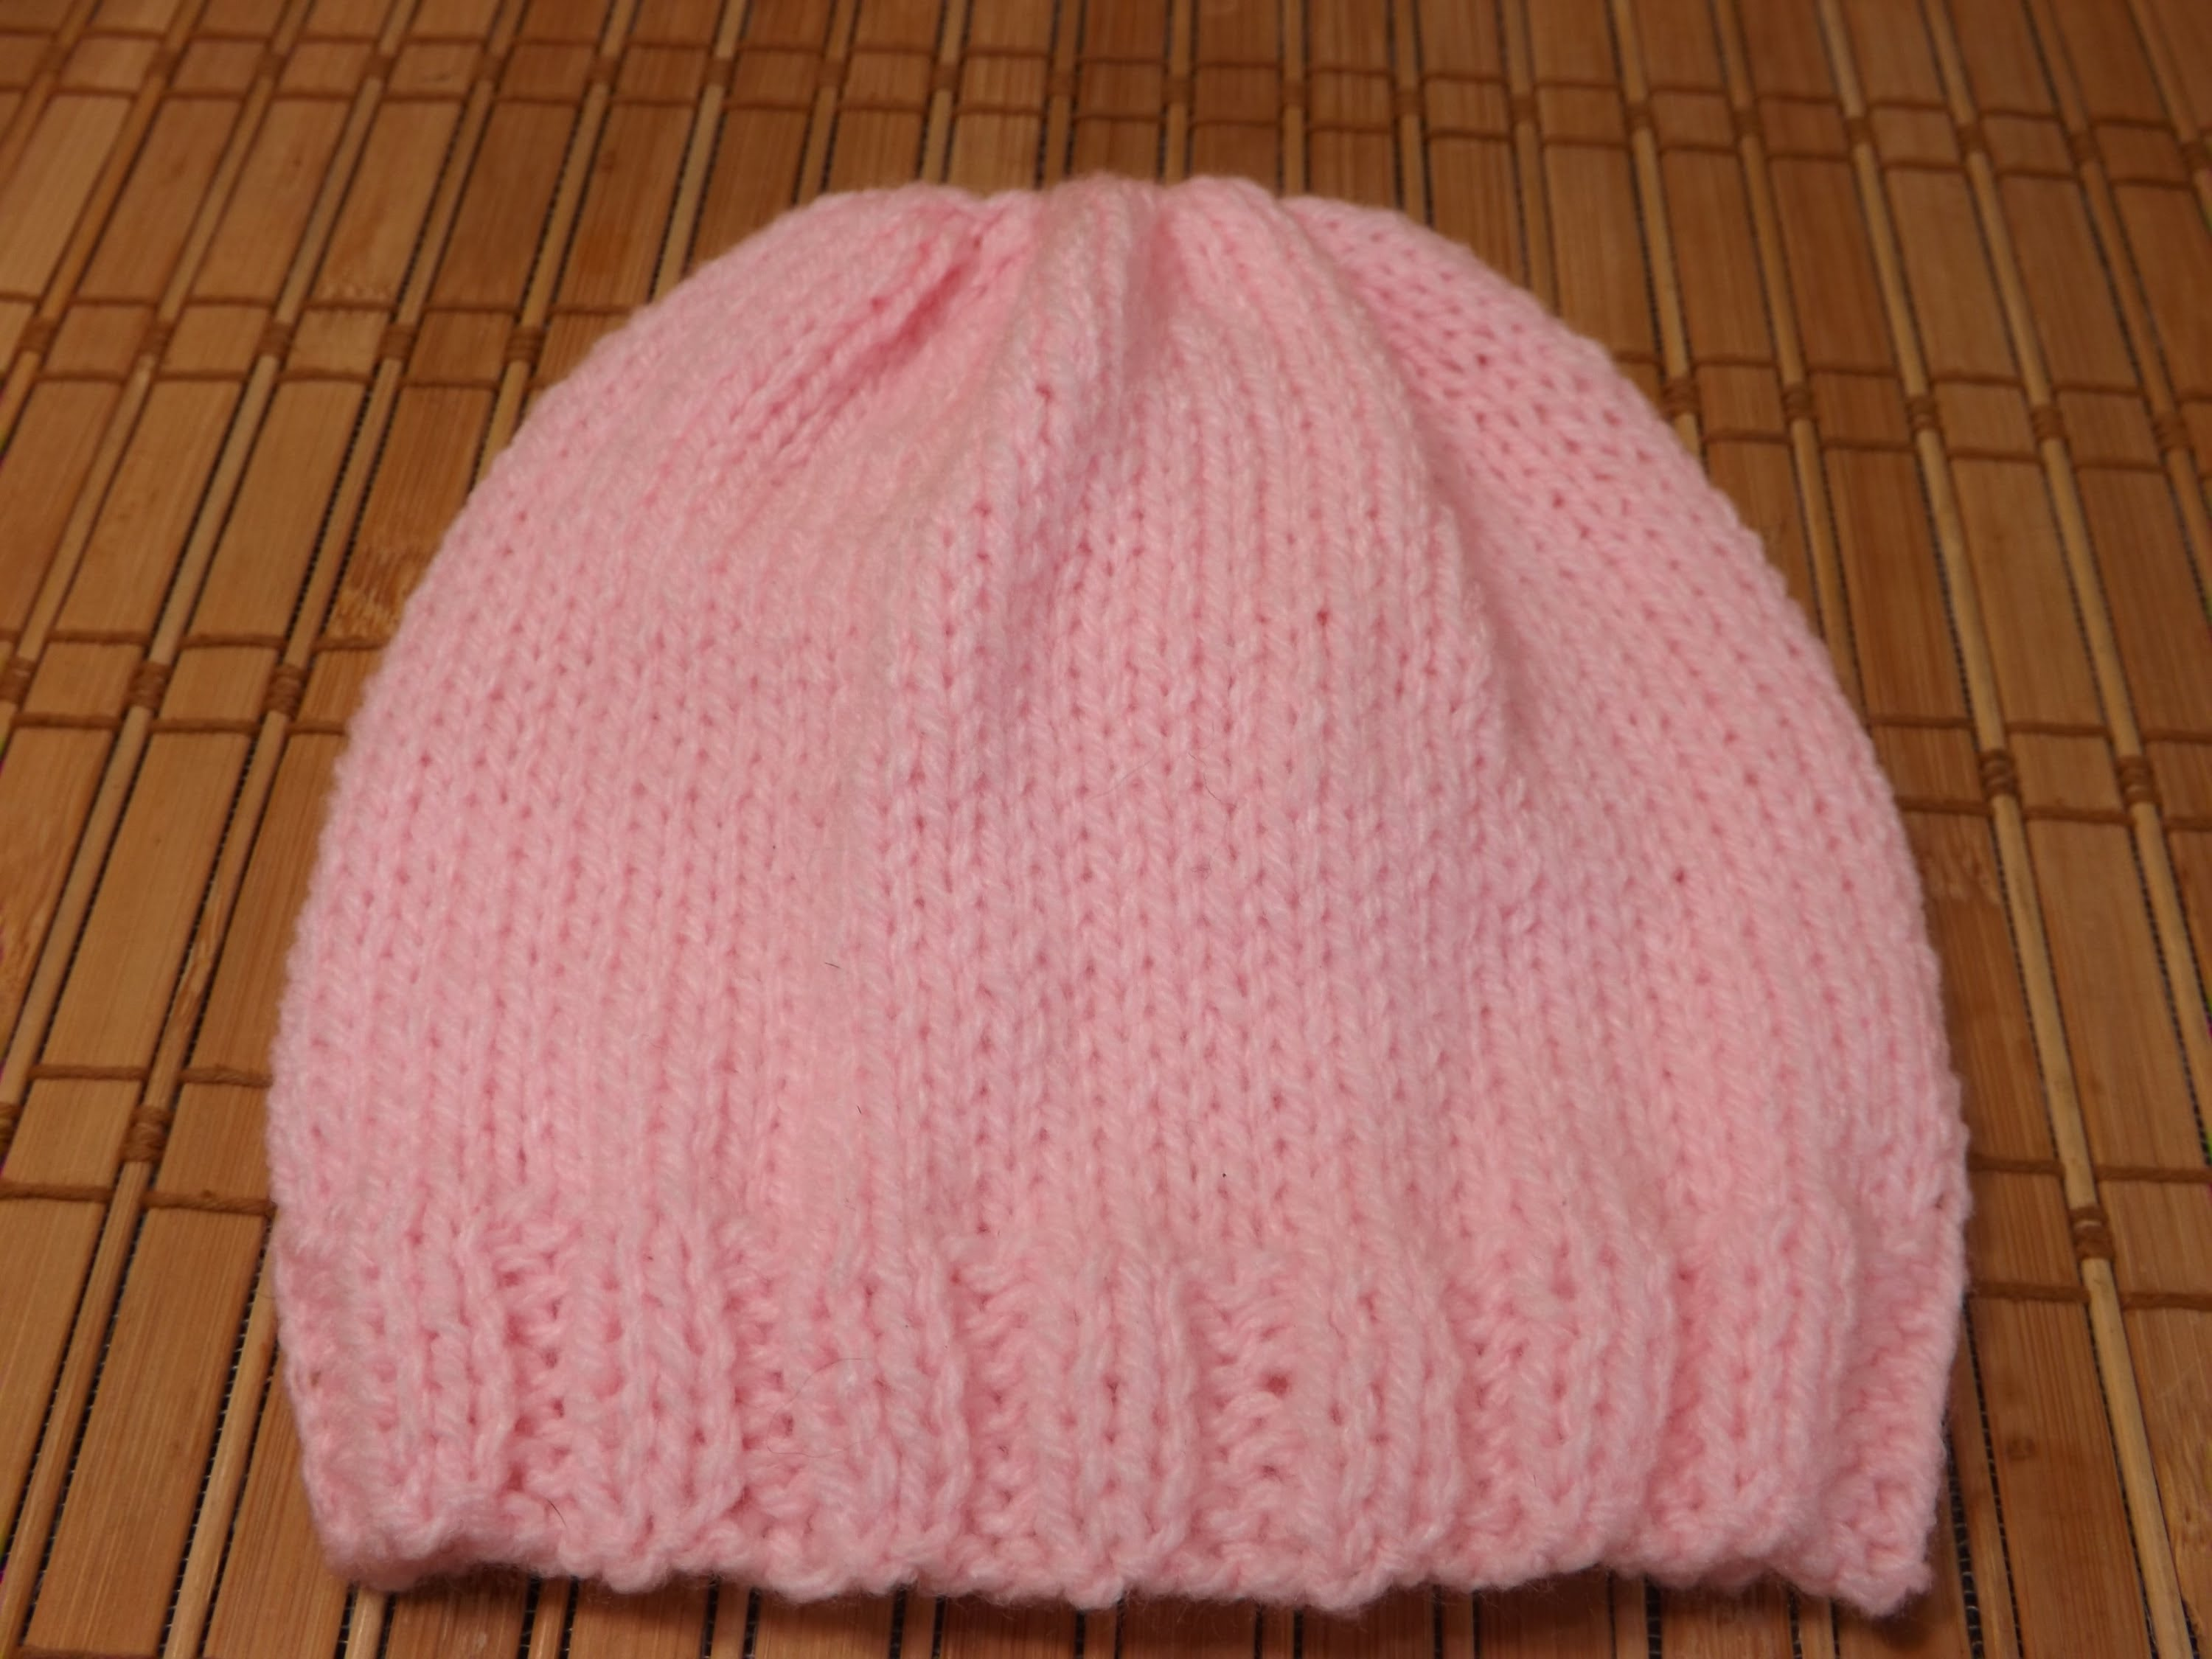 knitted baby hats how to knit a newborn babyu0027s hat for beginners - youtube VMROEAI